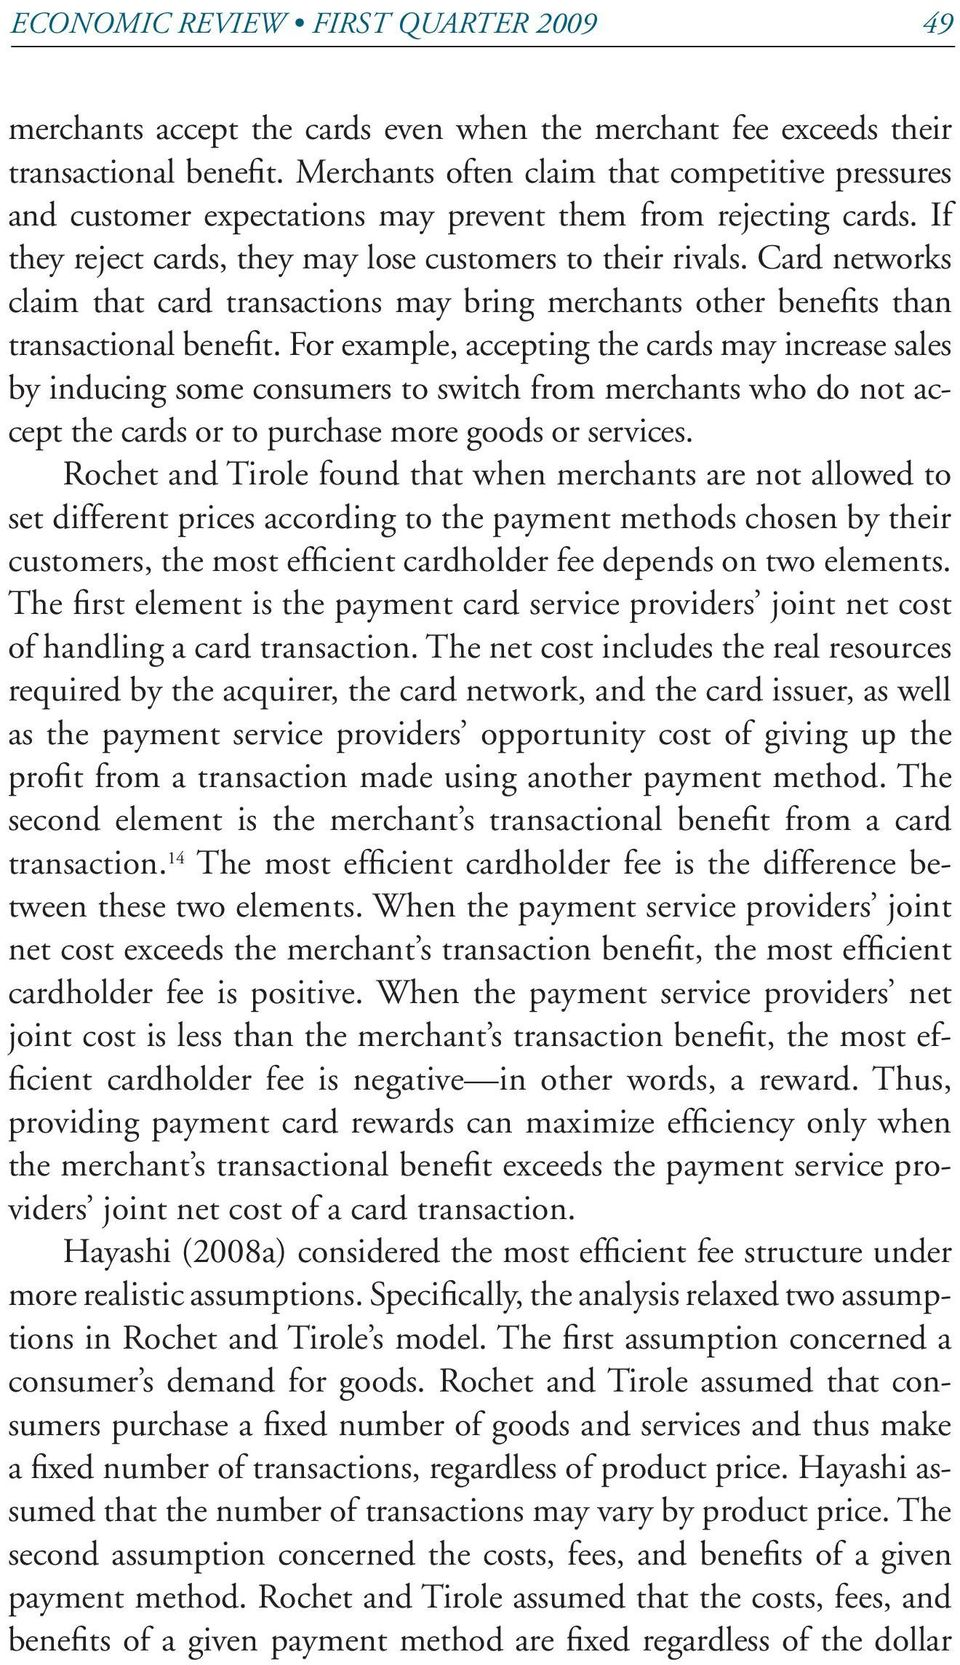 Card networks claim that card transactions may bring merchants other benefits than transactional benefit.